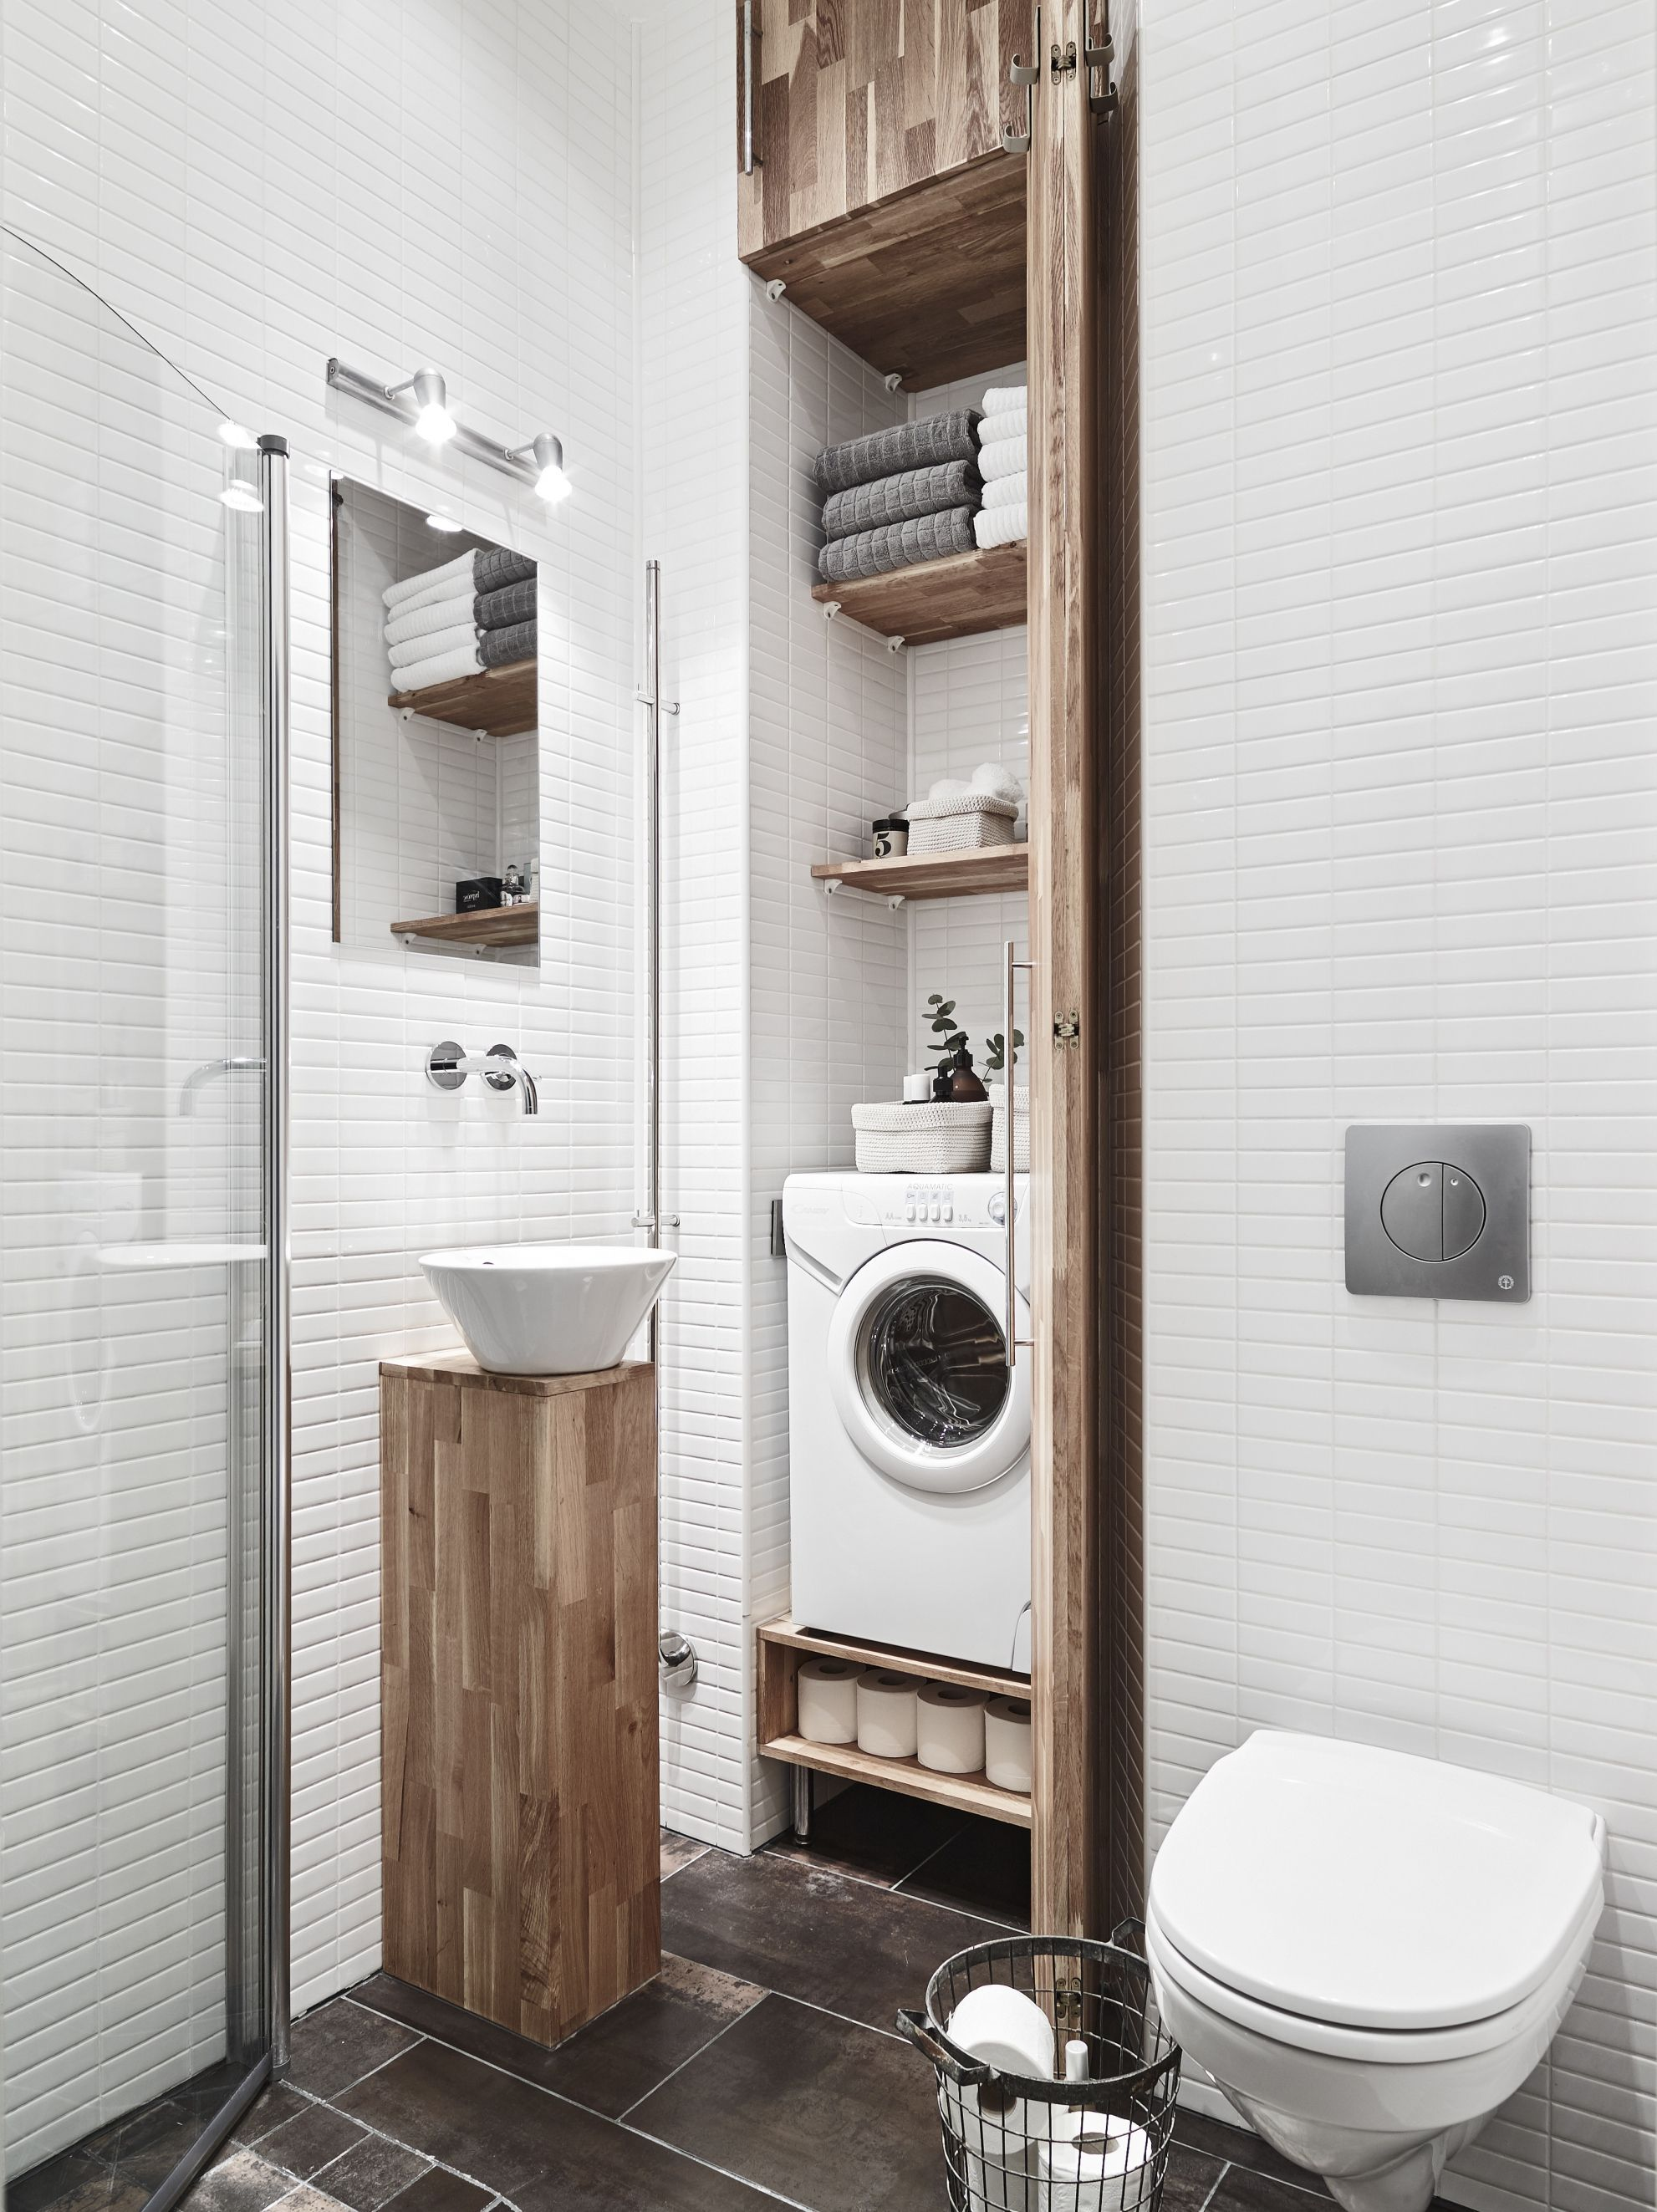 Laundry room ideas / laundry room in bathroom / how to fit washer in ...